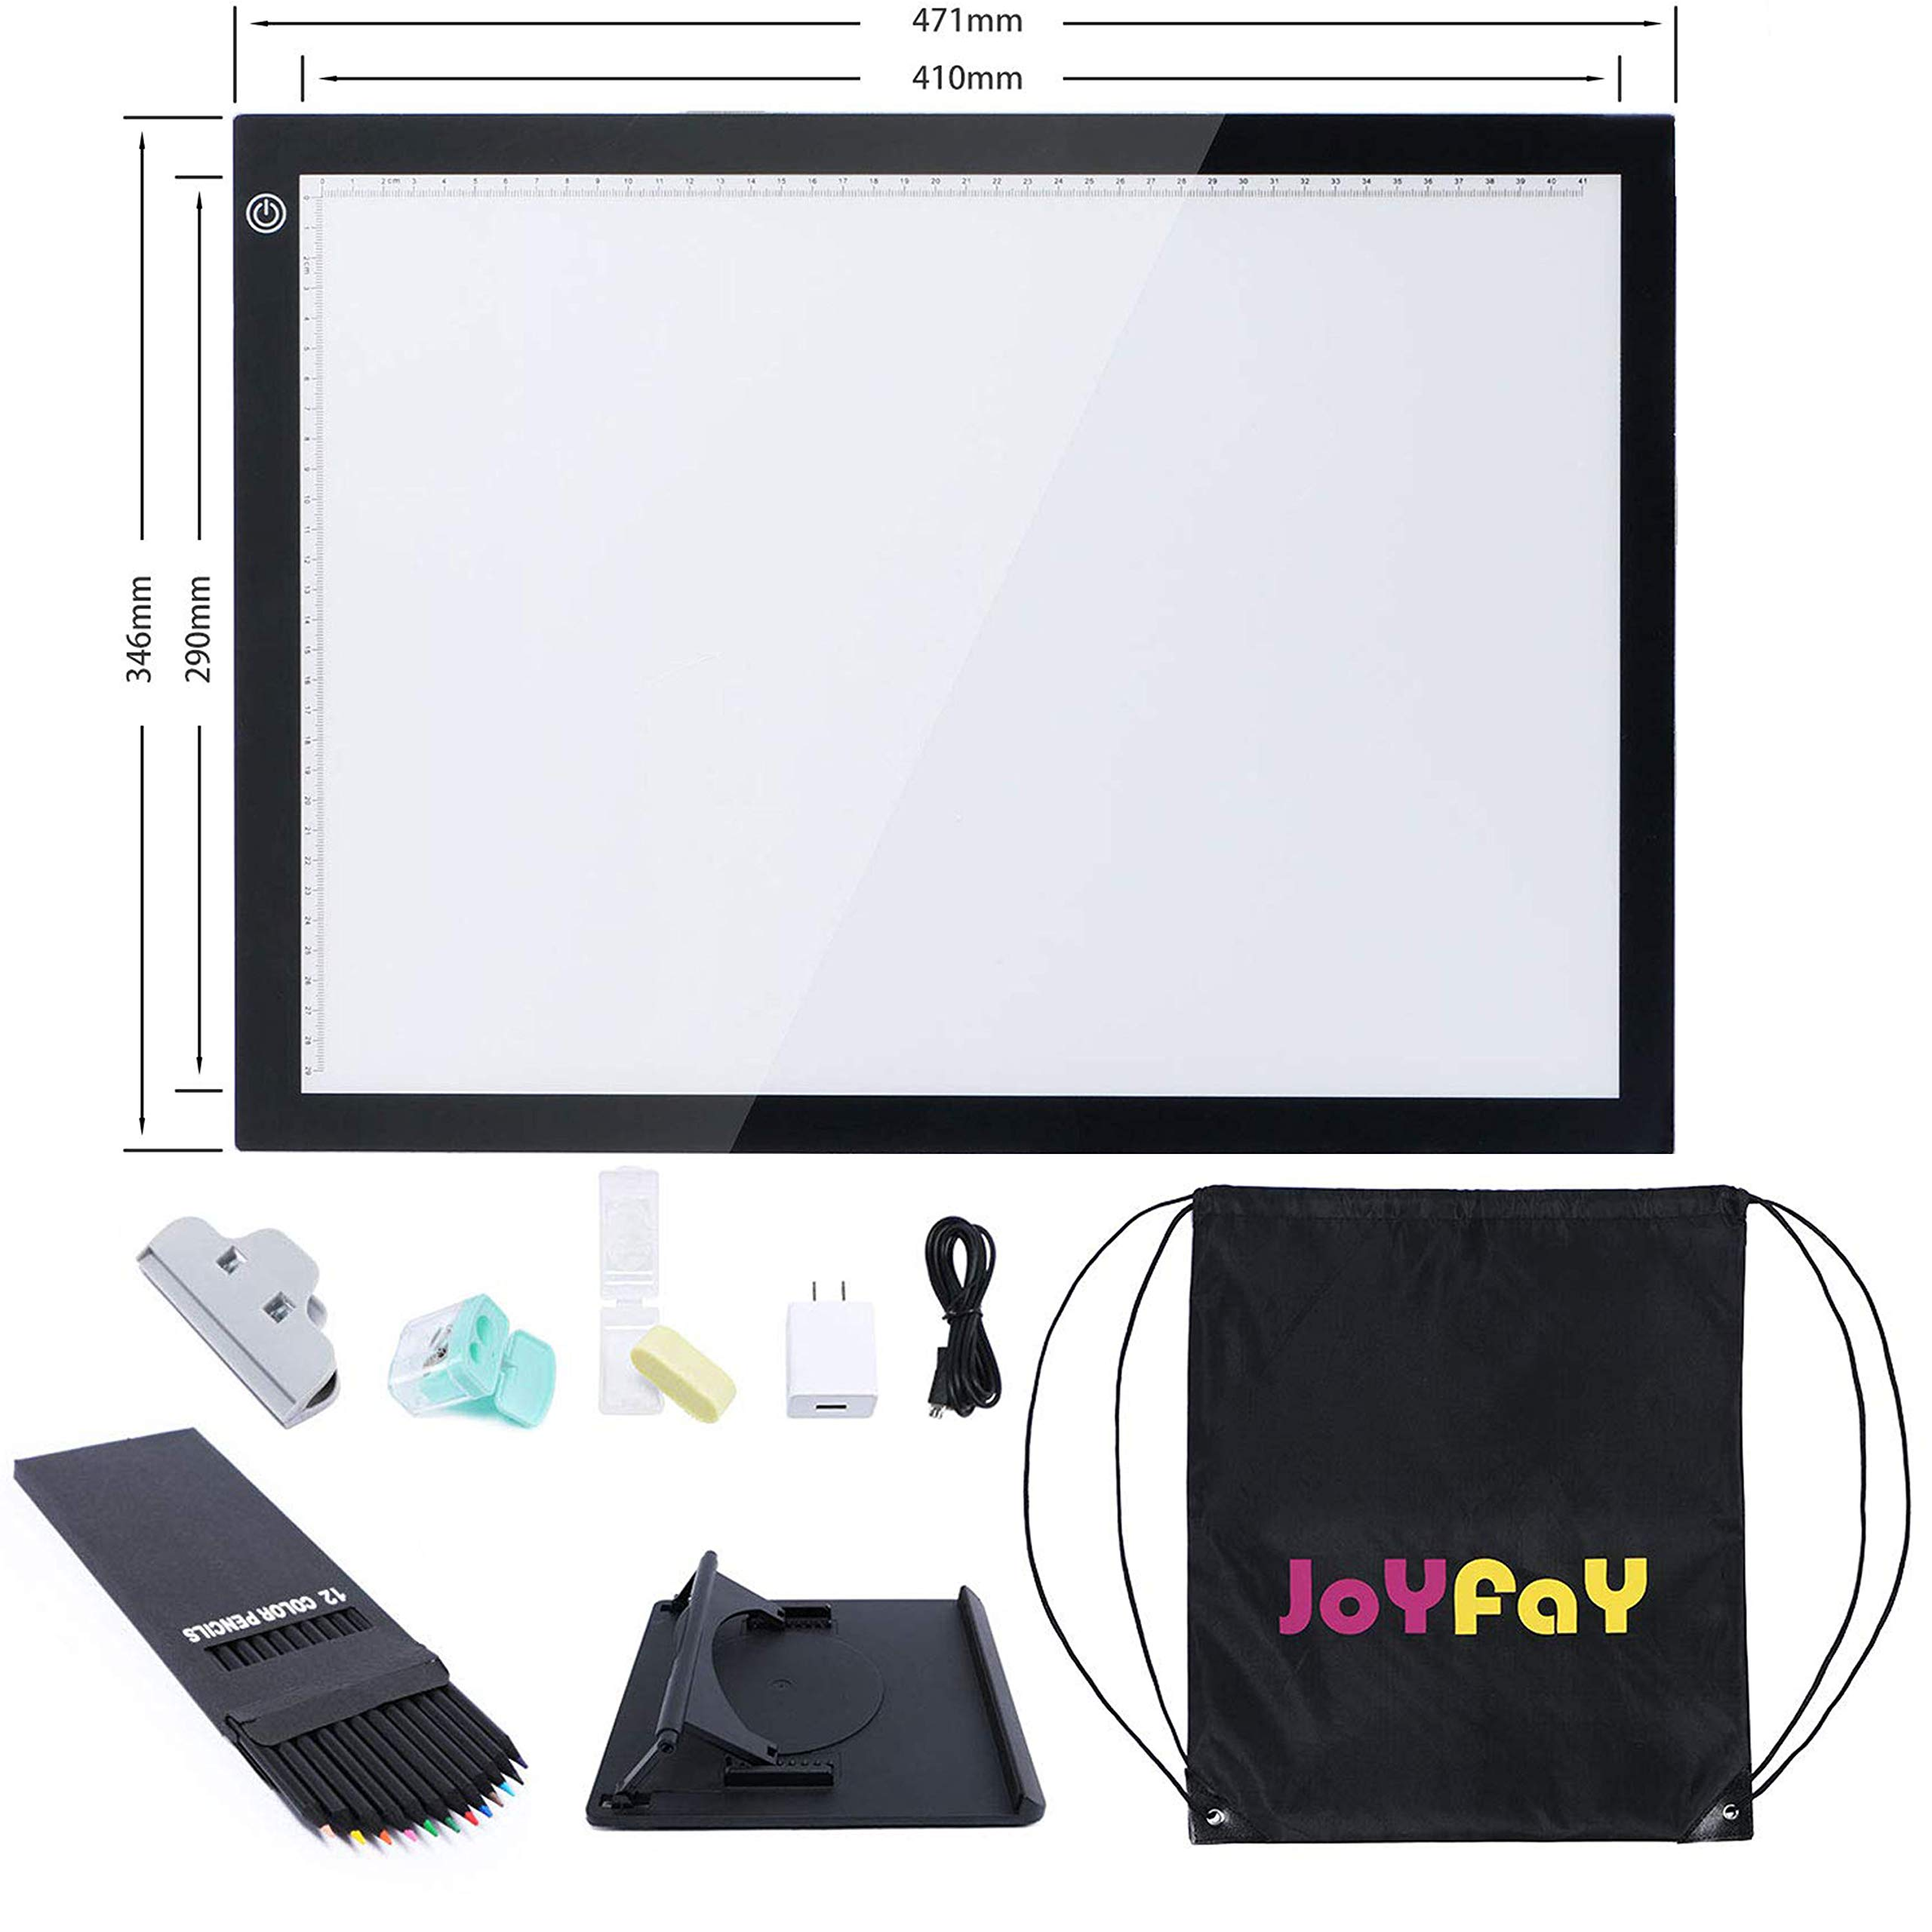 A3 Tracing Light Box Copy Board Pad Ultra-Thin Portable LED Tracer w/Pad Stand USB Power Cable w/Adapter Dimmable Brightness LED Artcraft for Drawing Painting Sketching by Joyfay by Joyfay